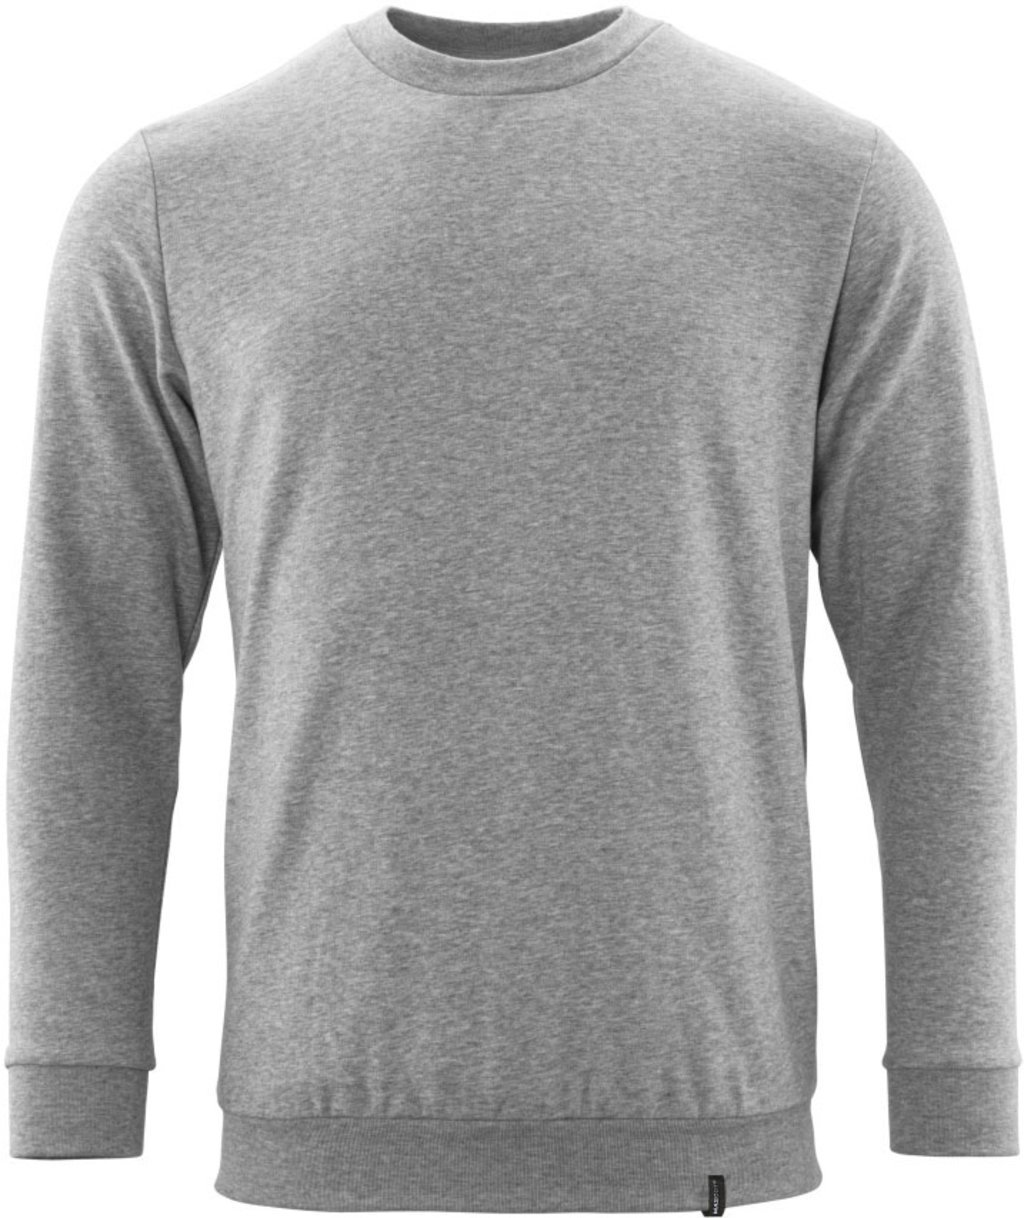 Mascot Crossover Sustainable sweatshirt, Grey